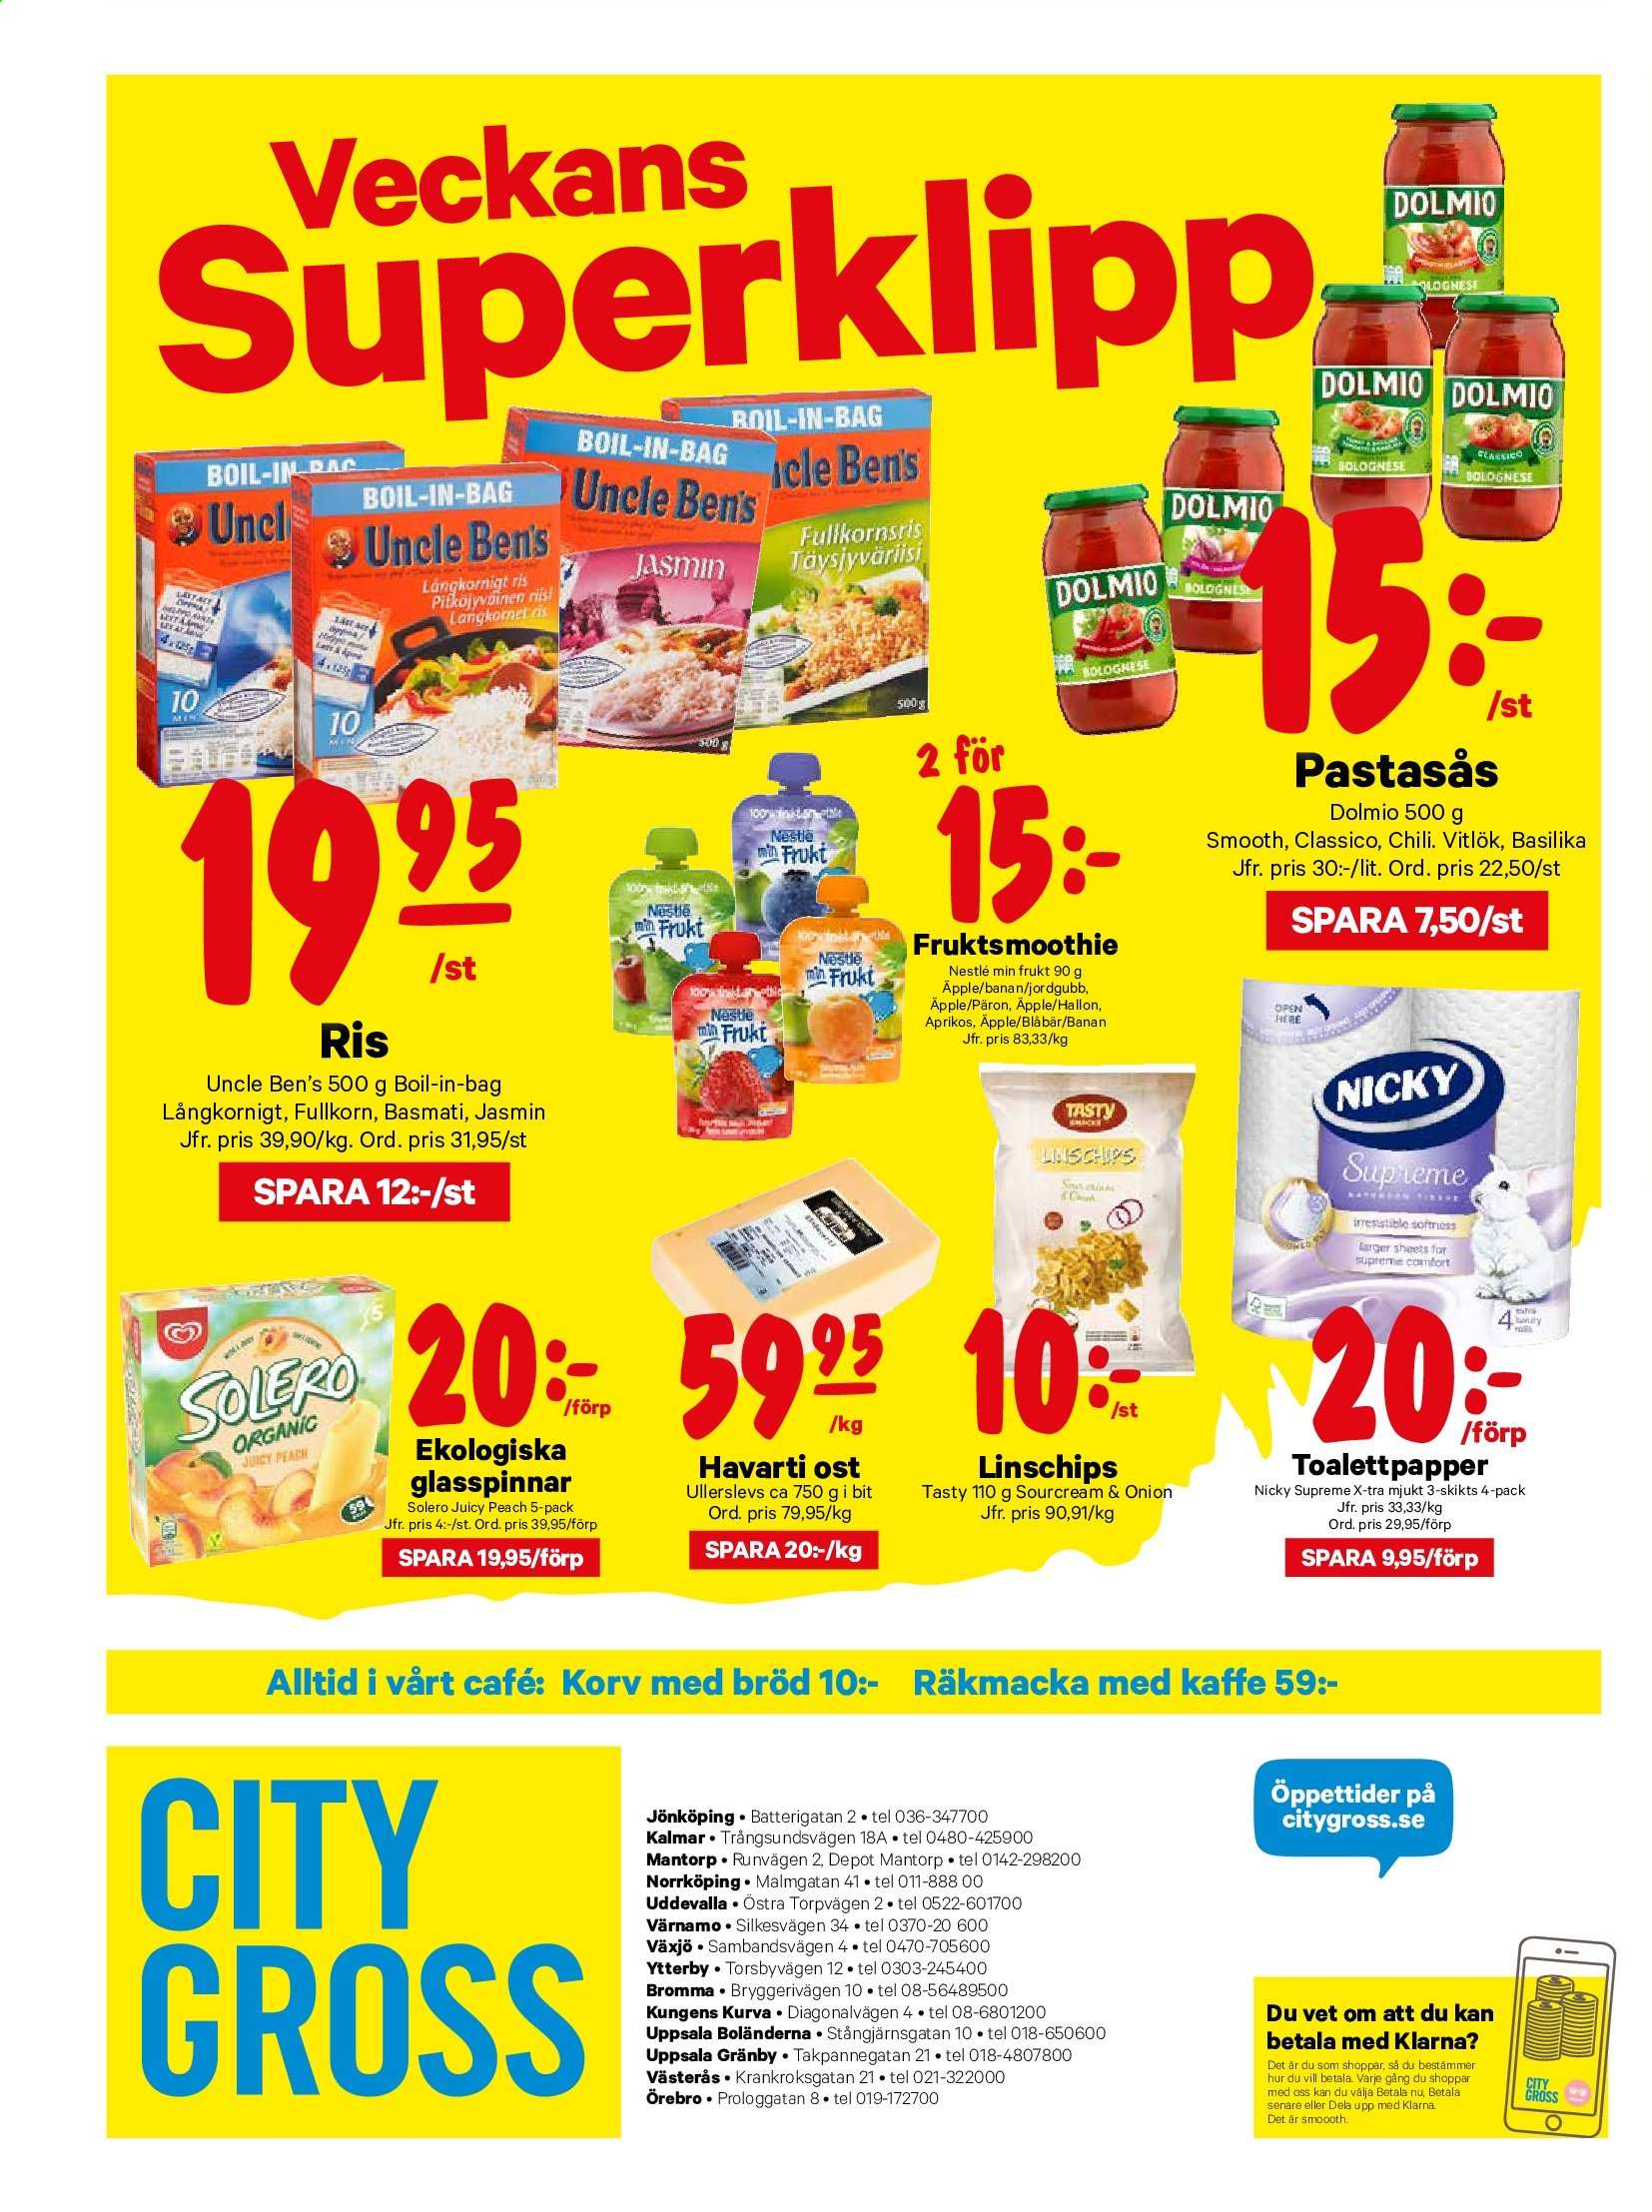 City Gross reklamblad - 28/10 2019 - 3/11 2019. Sida 16.